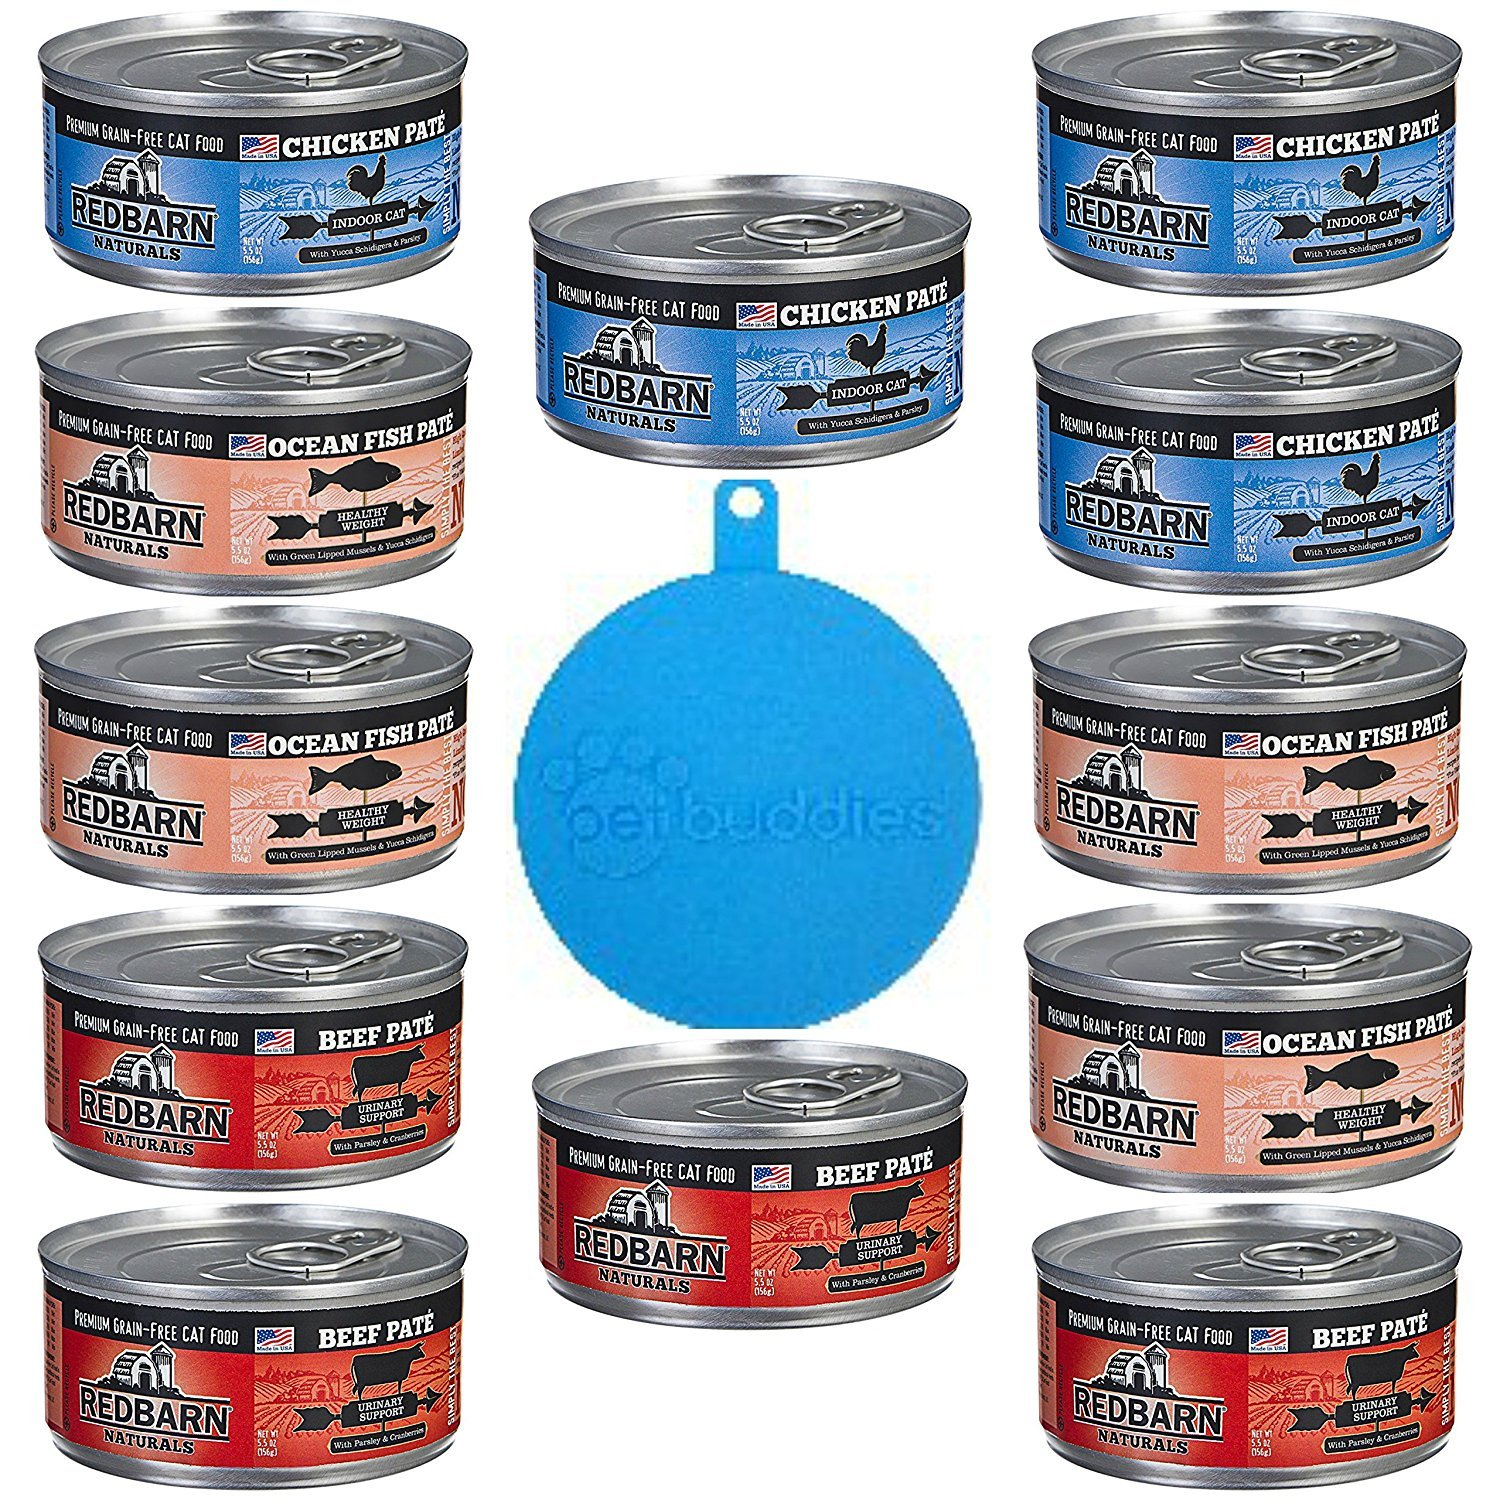 RedBarn Naturals Grain Free Canned Cat Food Pate in 3 Flavors – Beef, Ocean Fish, and Chicken - 12 Cans Total, 5.5 Ounces Each - Plus 1 Pet Buddies Silicone ...